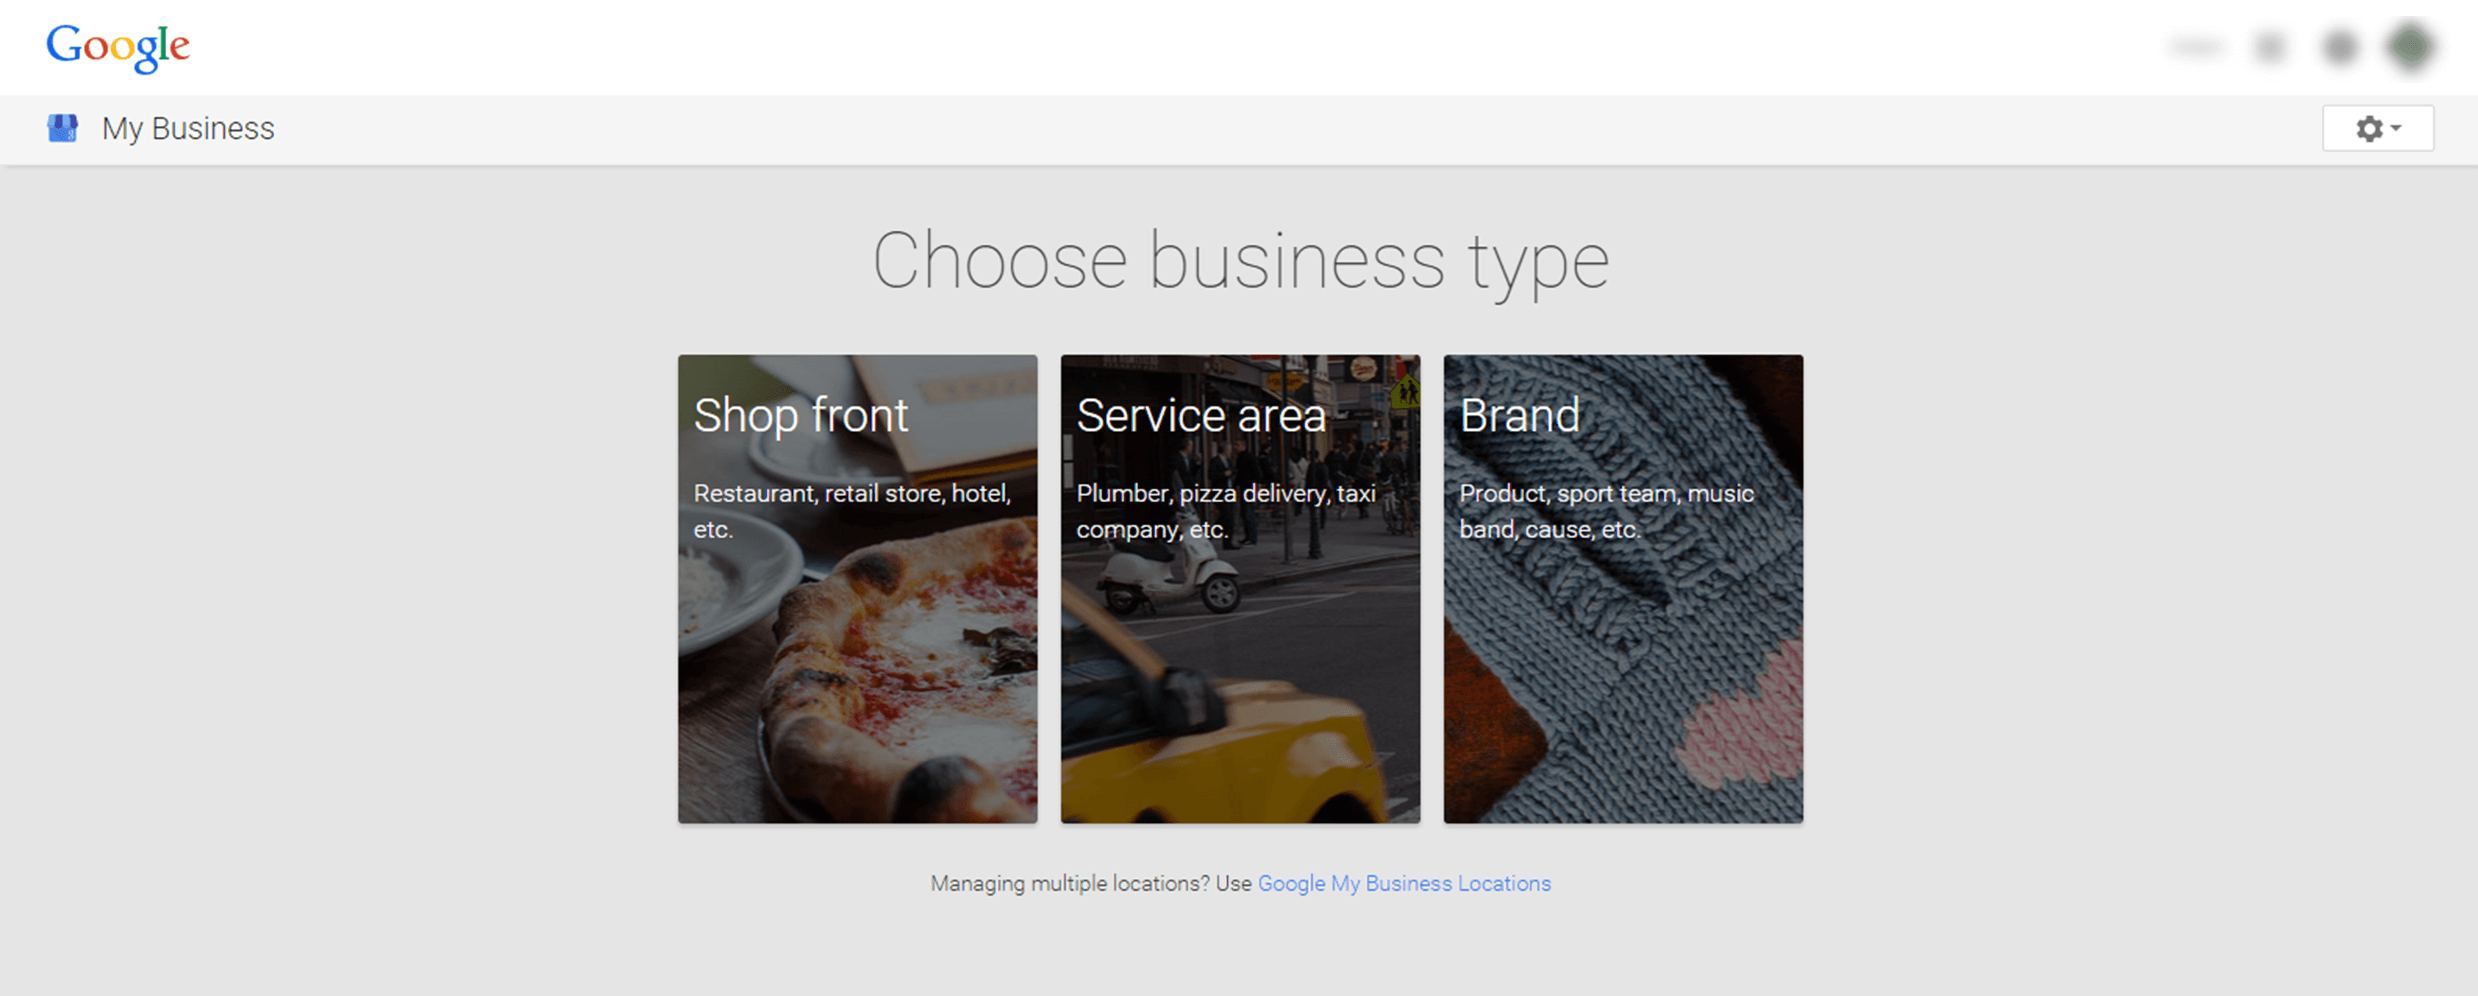 Set up new Google+ Business Page.